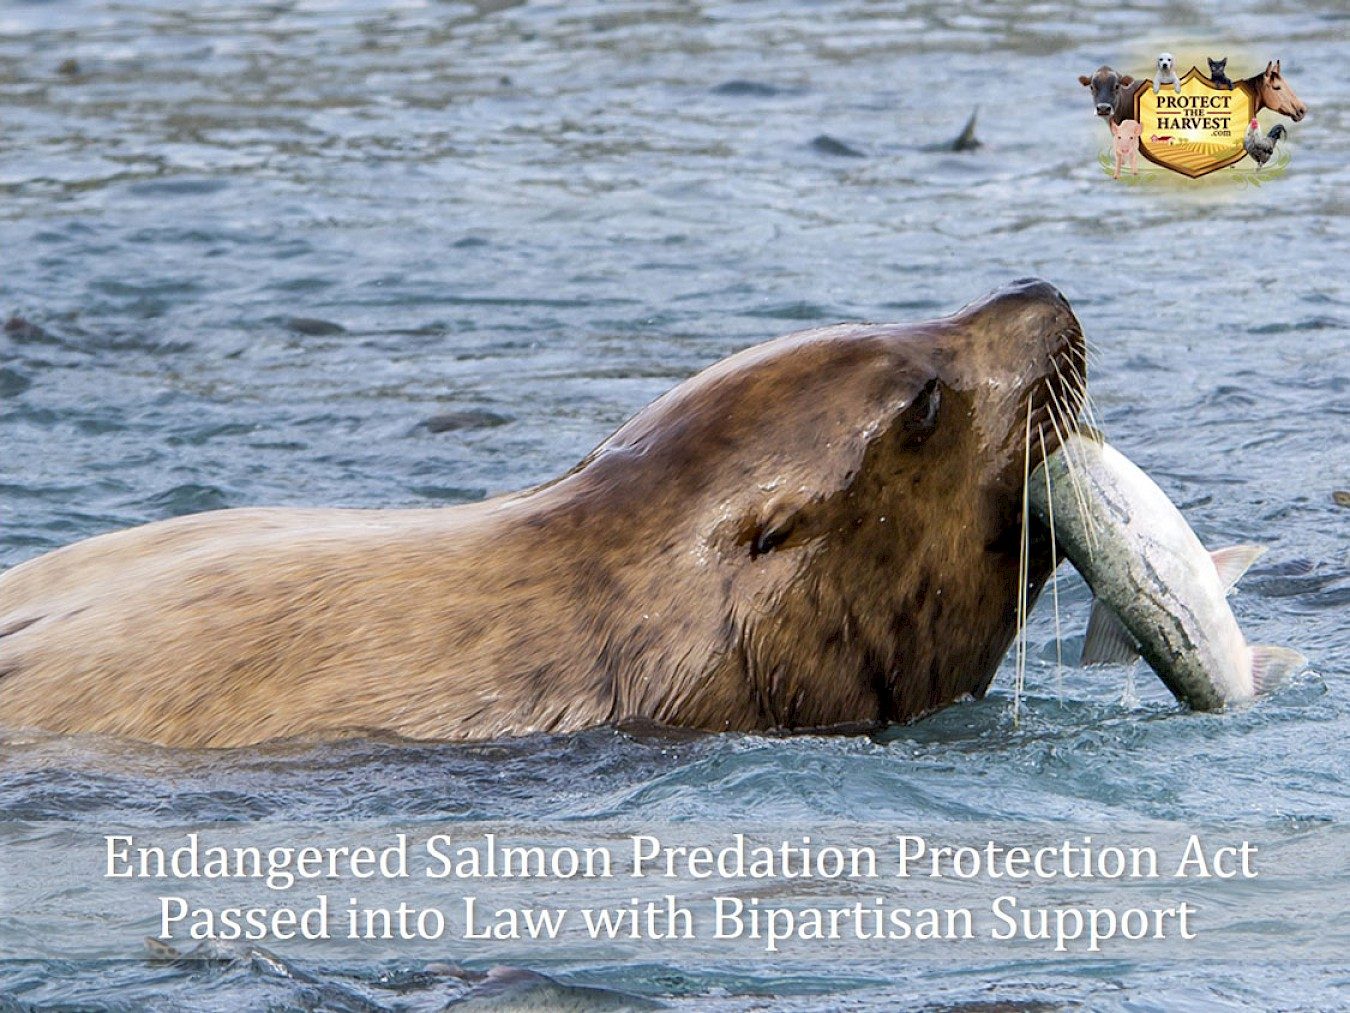 Endangered Salmon Predation Protection Act Passed Into Law With Bipartisan Support